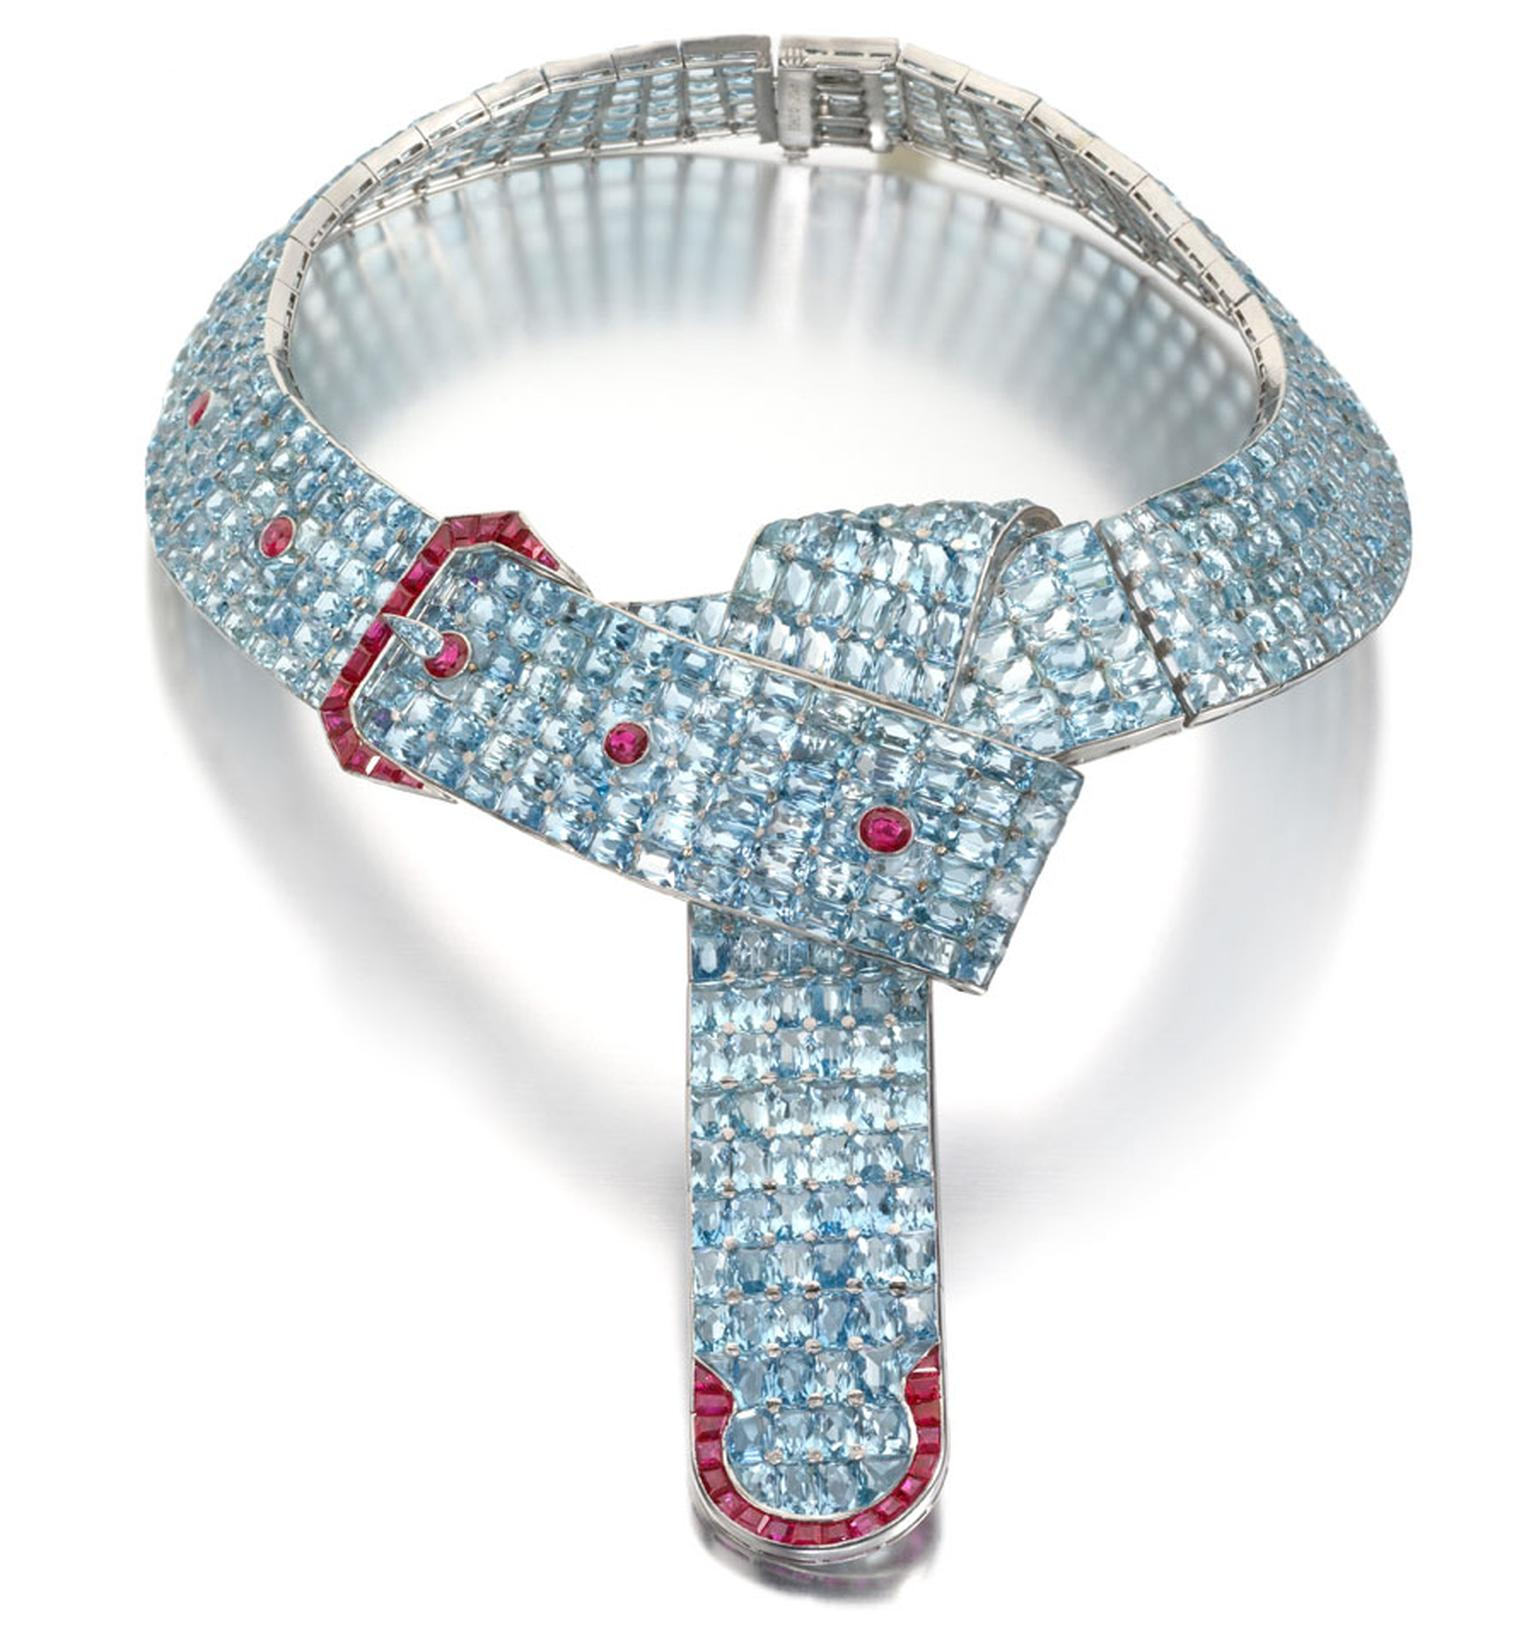 MPL-2013-Siegelson-aquamarine-and-ruby-belt-with-buckle-necklace-designed-by-fulco-duke-of-Verdura-for-Paul-Flat-circa-1935